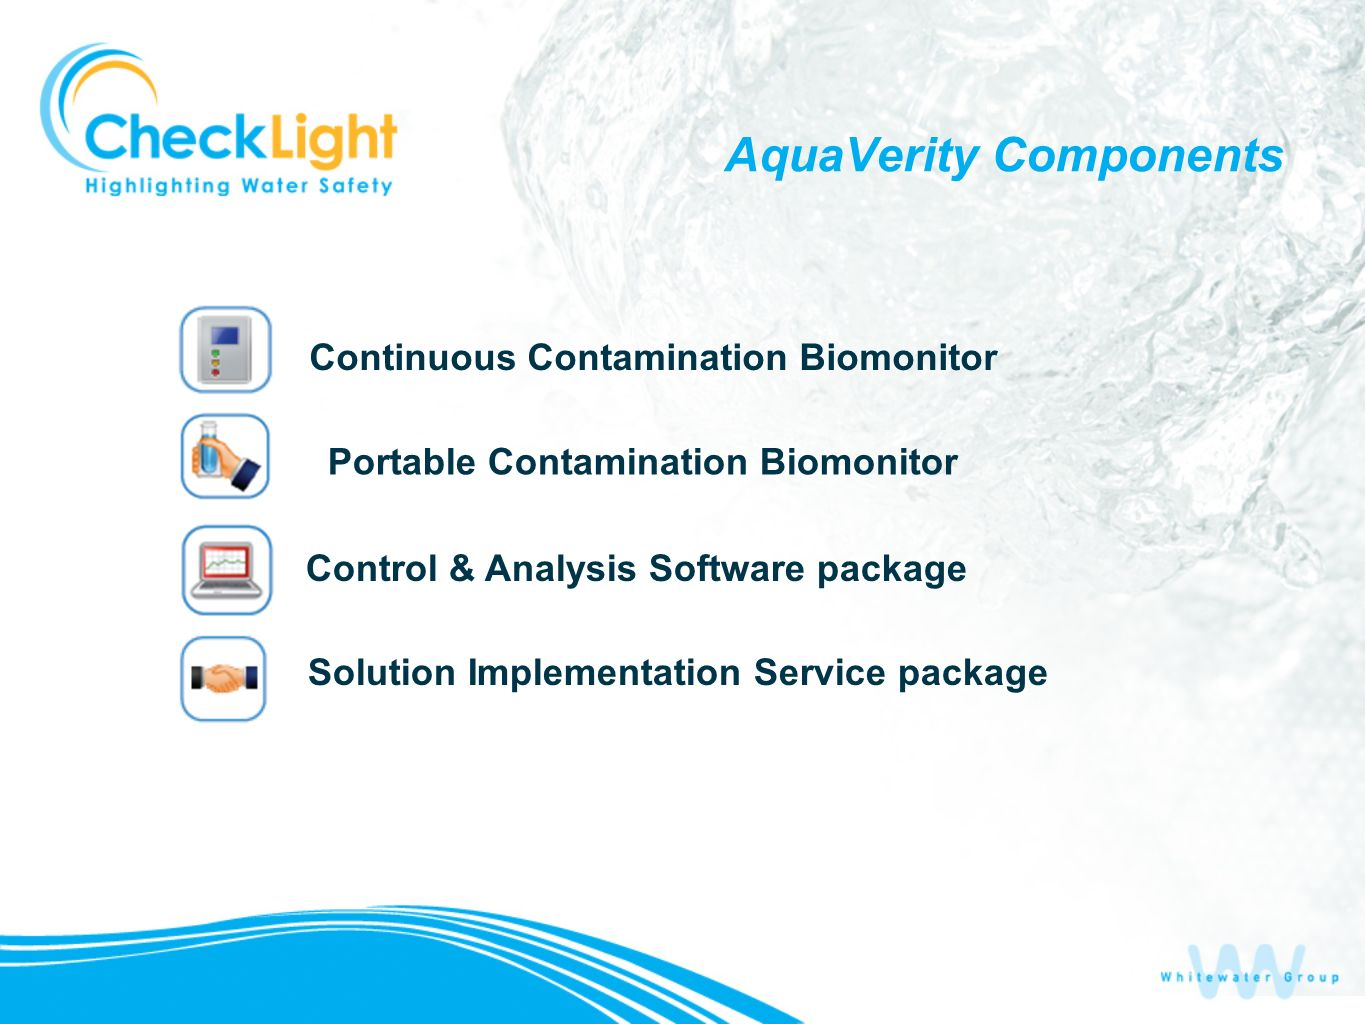 AquaVerity Components